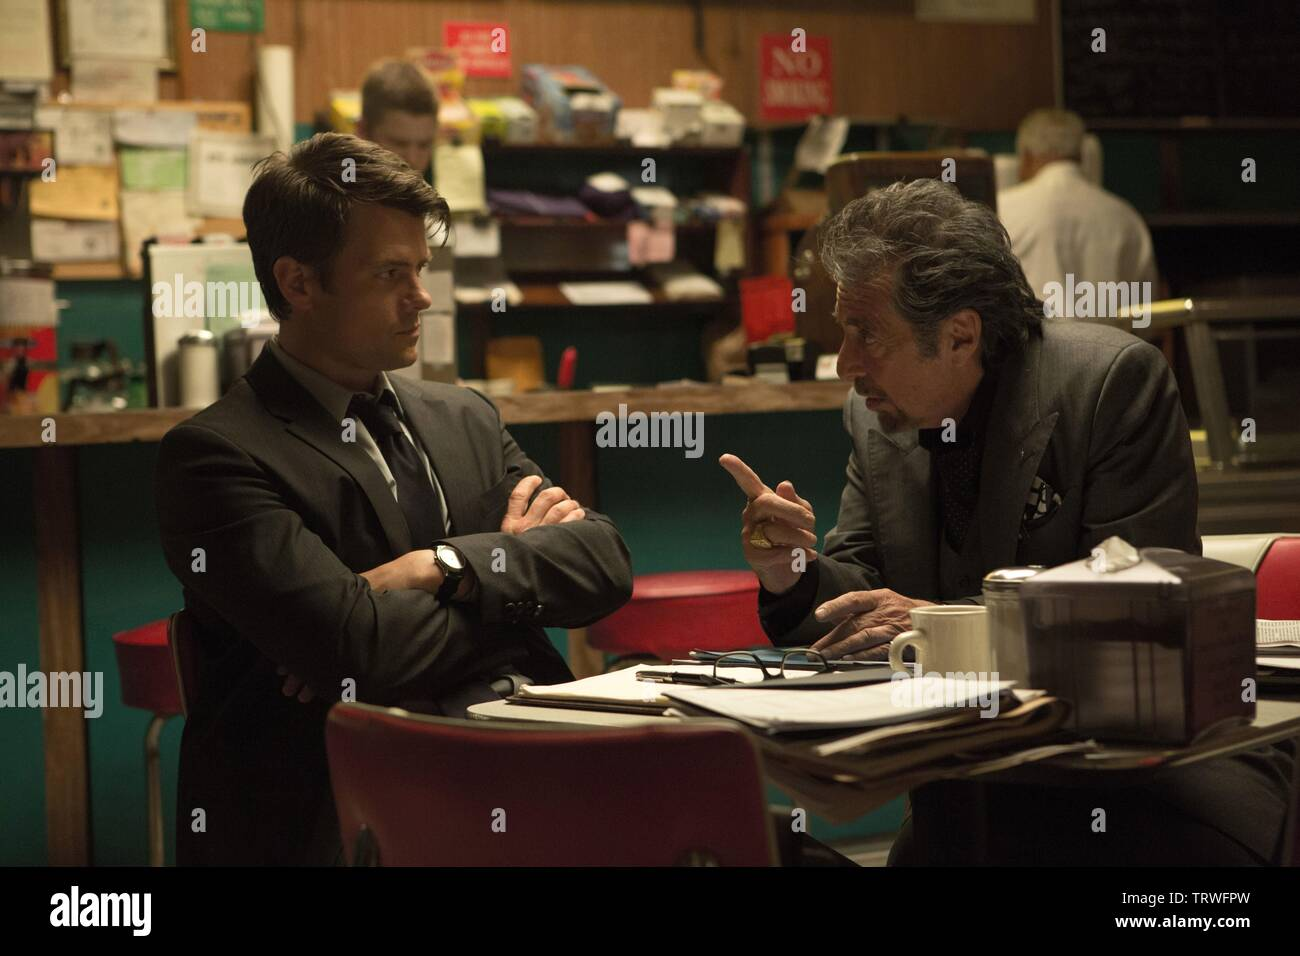 AL PACINO and JOSH DUHAMEL in MISCONDUCT (2016). Copyright: Editorial use only. No merchandising or book covers. This is a publicly distributed handout. Access rights only, no license of copyright provided. Only to be reproduced in conjunction with promotion of this film. Credit: MIKE AND MARTY PRODUCTIONS / Album Stock Photo